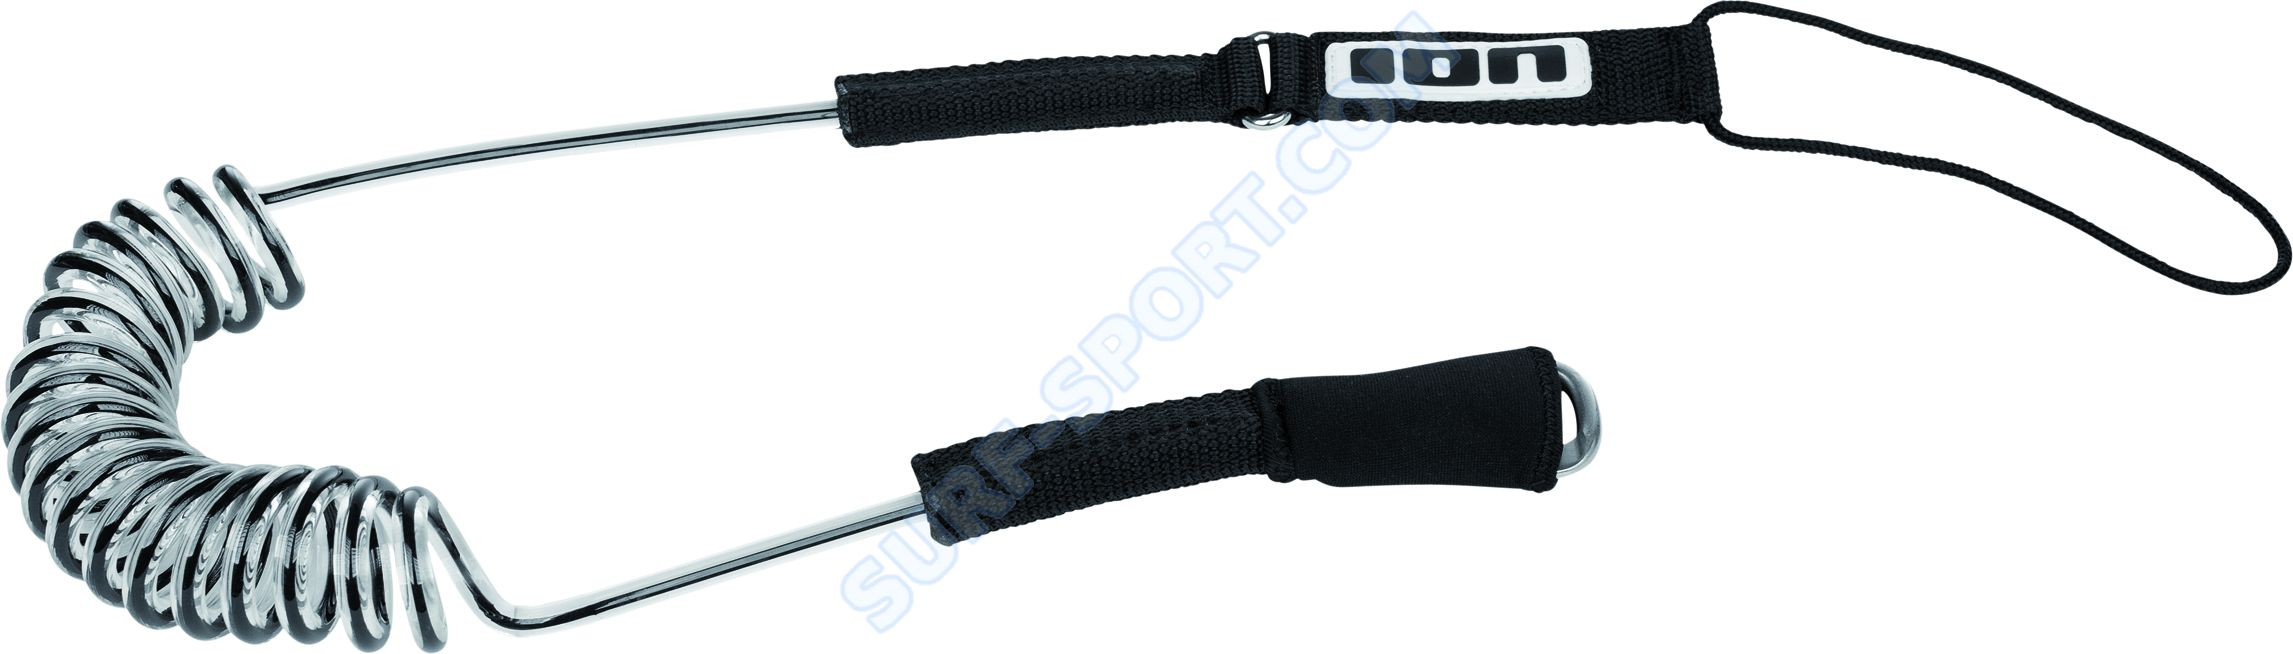 48400-7077_Twintip_Leash_black_4c_small.jpg